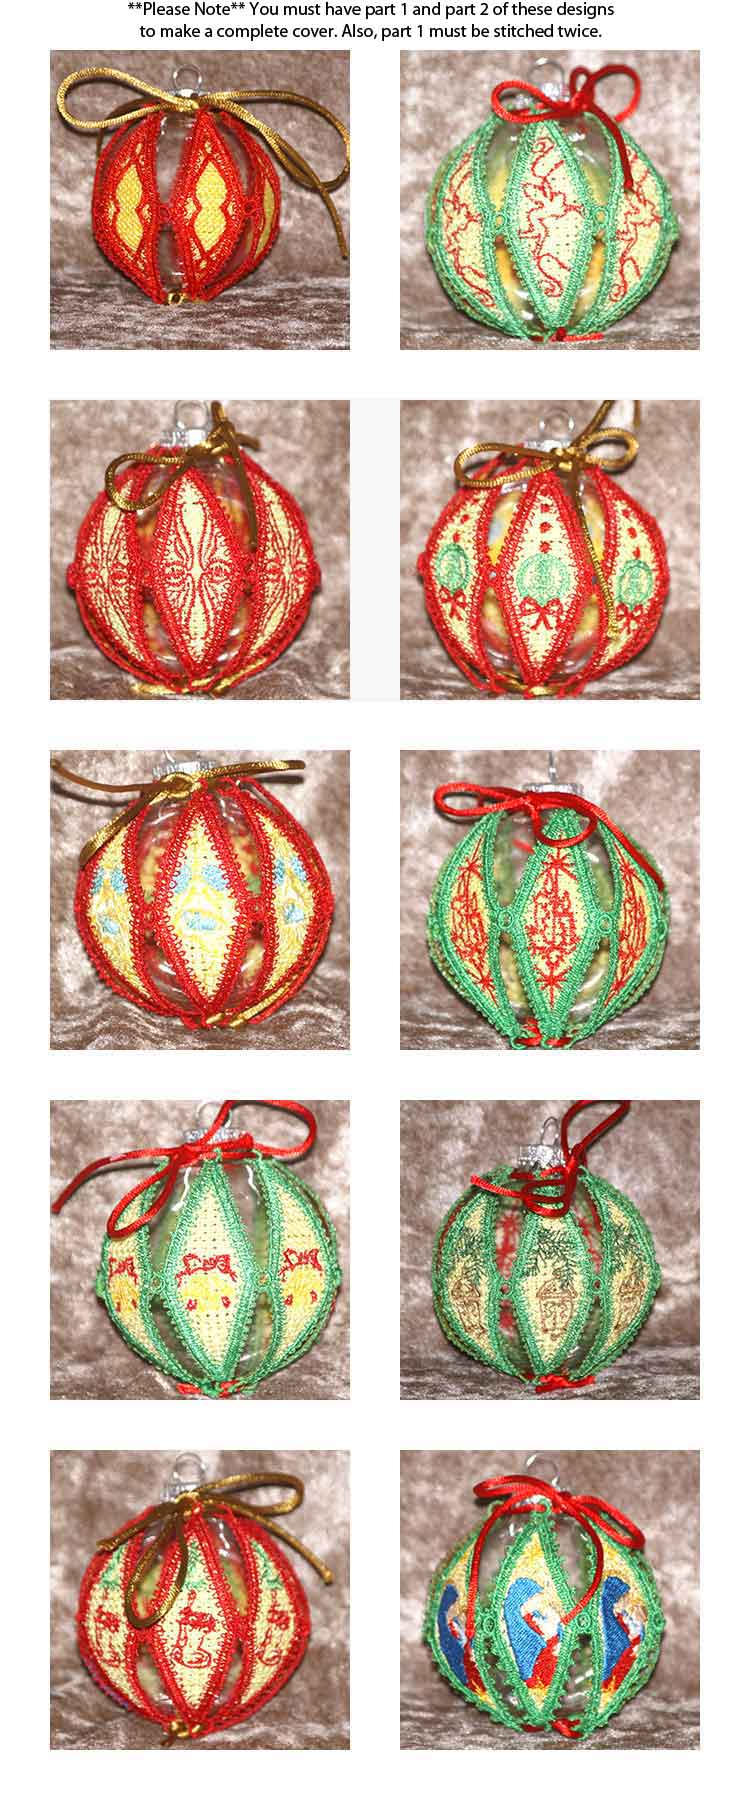 Machine embroidery lace christmas ornaments for Design ornaments